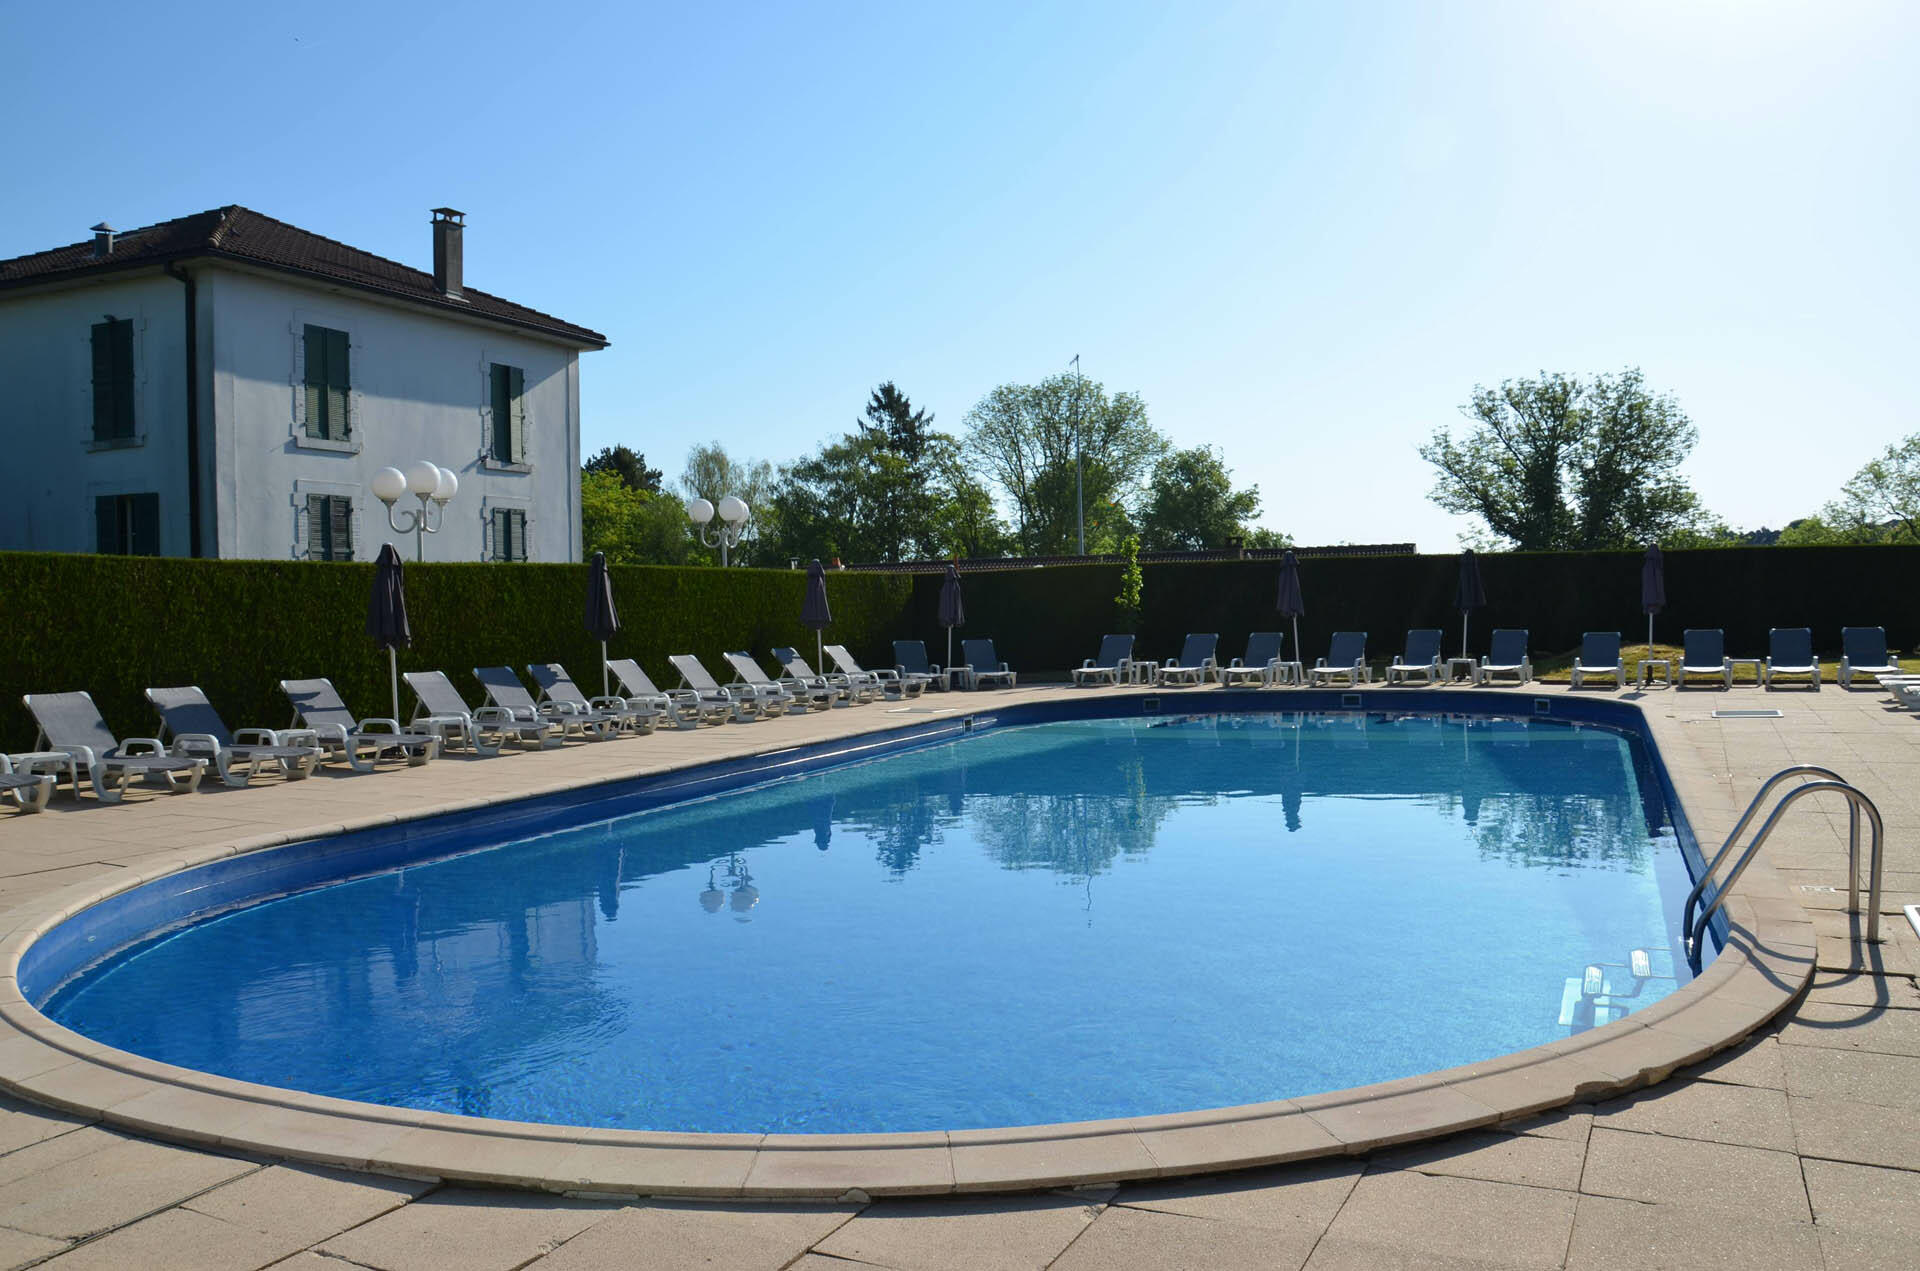 Pool at Hôtel-Club Cosmos in Contrexéville, France